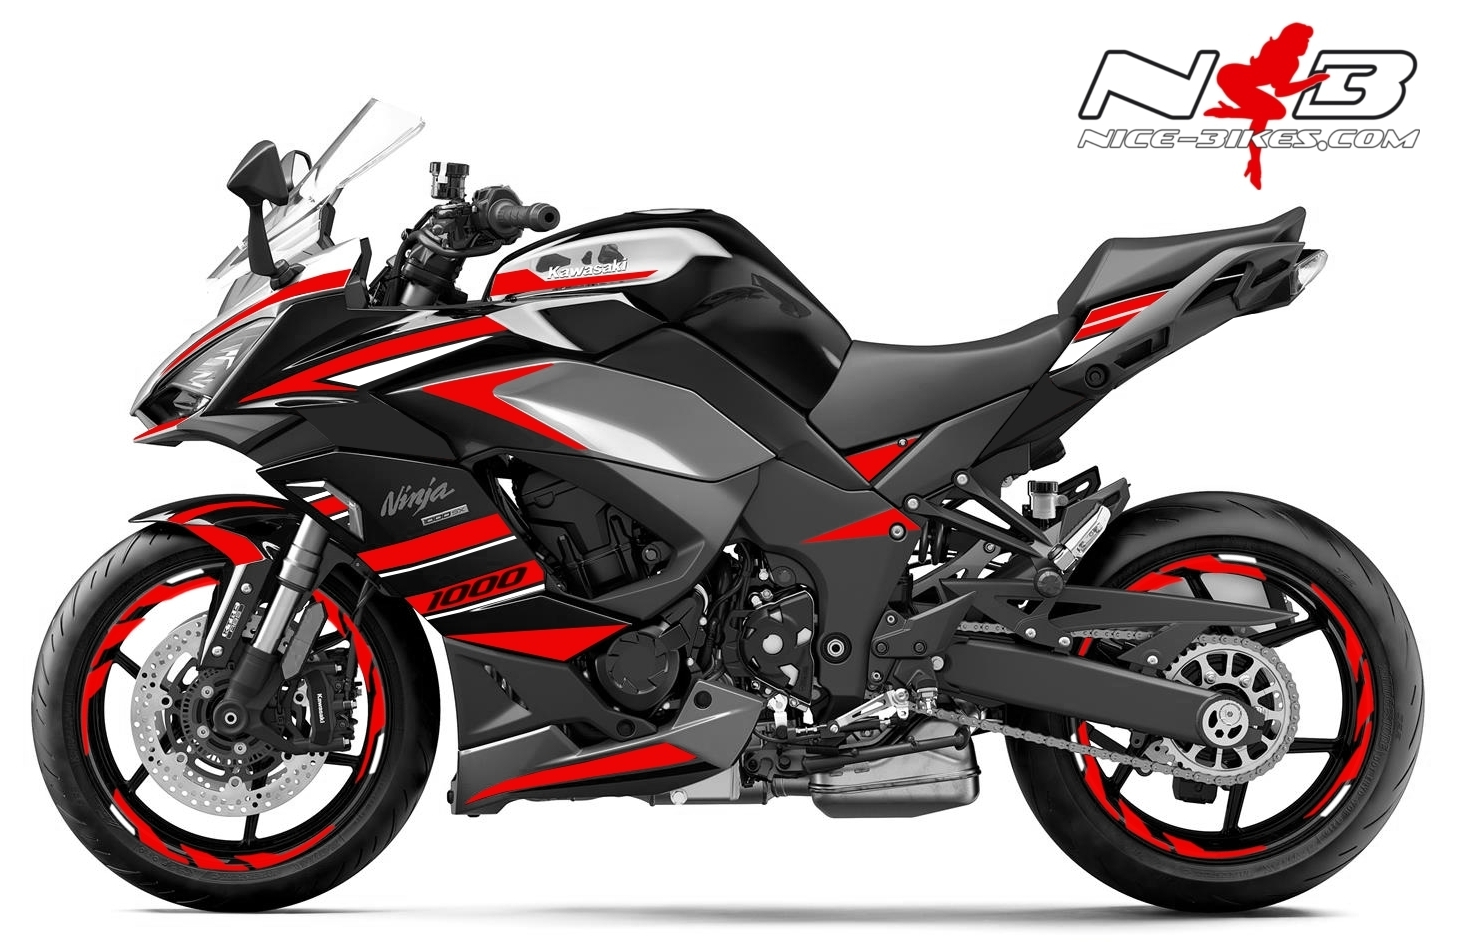 Foliendesign Kawasaki Z1000SX Racing Red